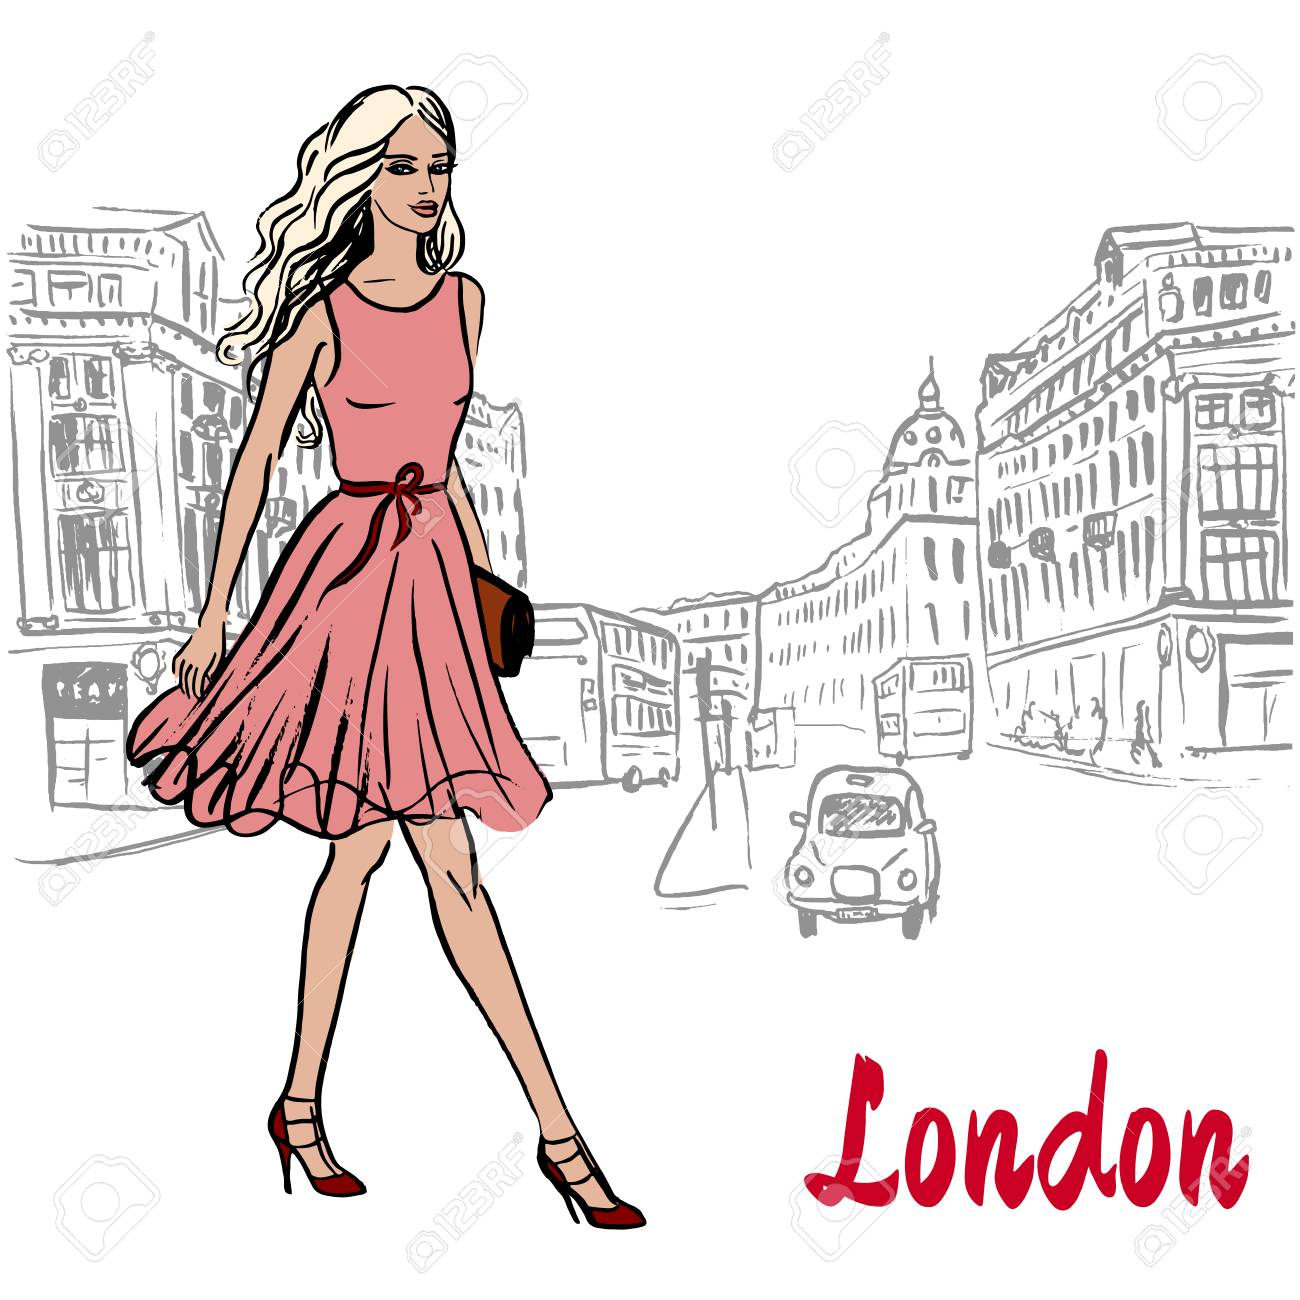 Woman walking in London